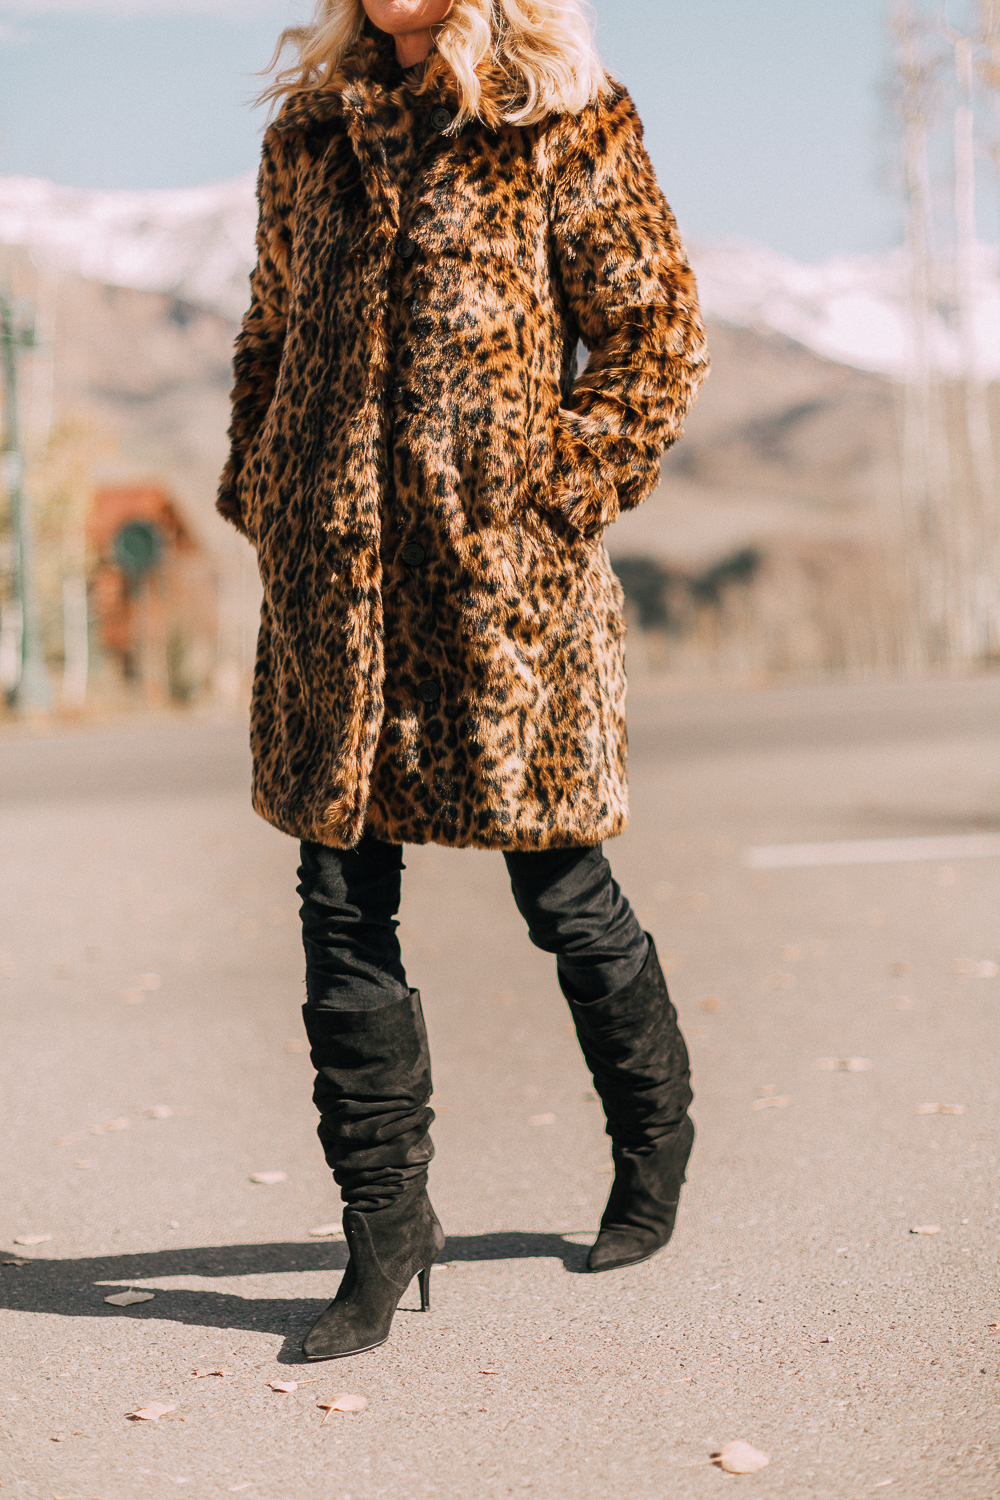 J.Crew faux fur leopard coat with slouchy knee high boots blogger outfit for fall and winter